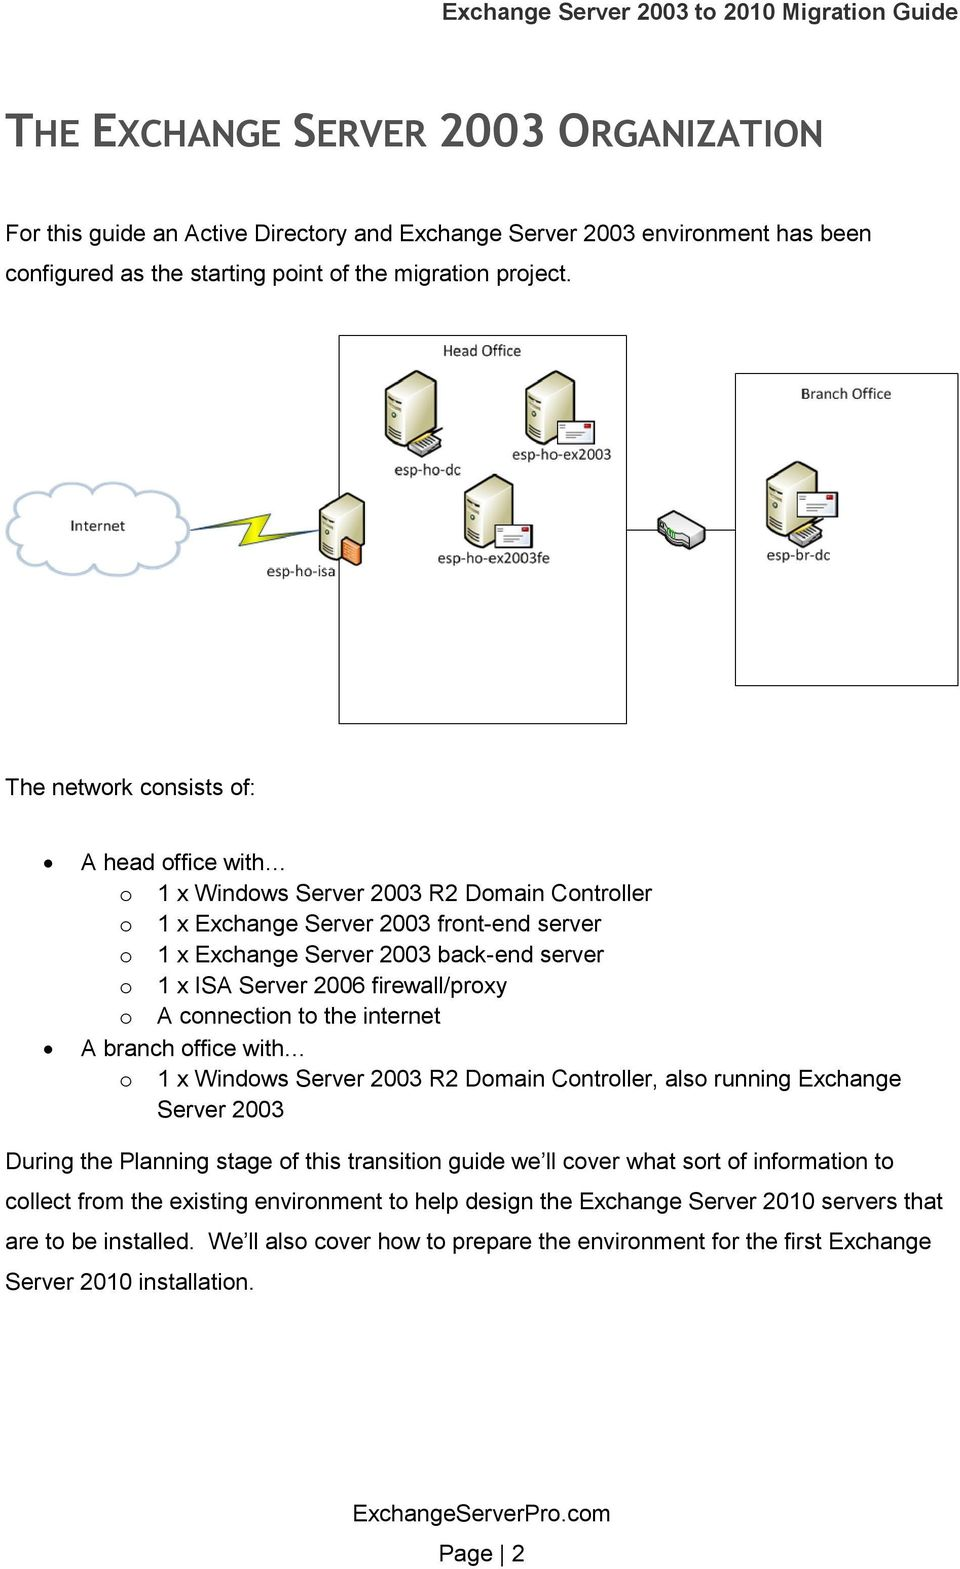 firewall/proxy o A connection to the internet A branch office with o 1 x Windows Server 2003 R2 Domain Controller, also running Exchange Server 2003 During the Planning stage of this transition guide